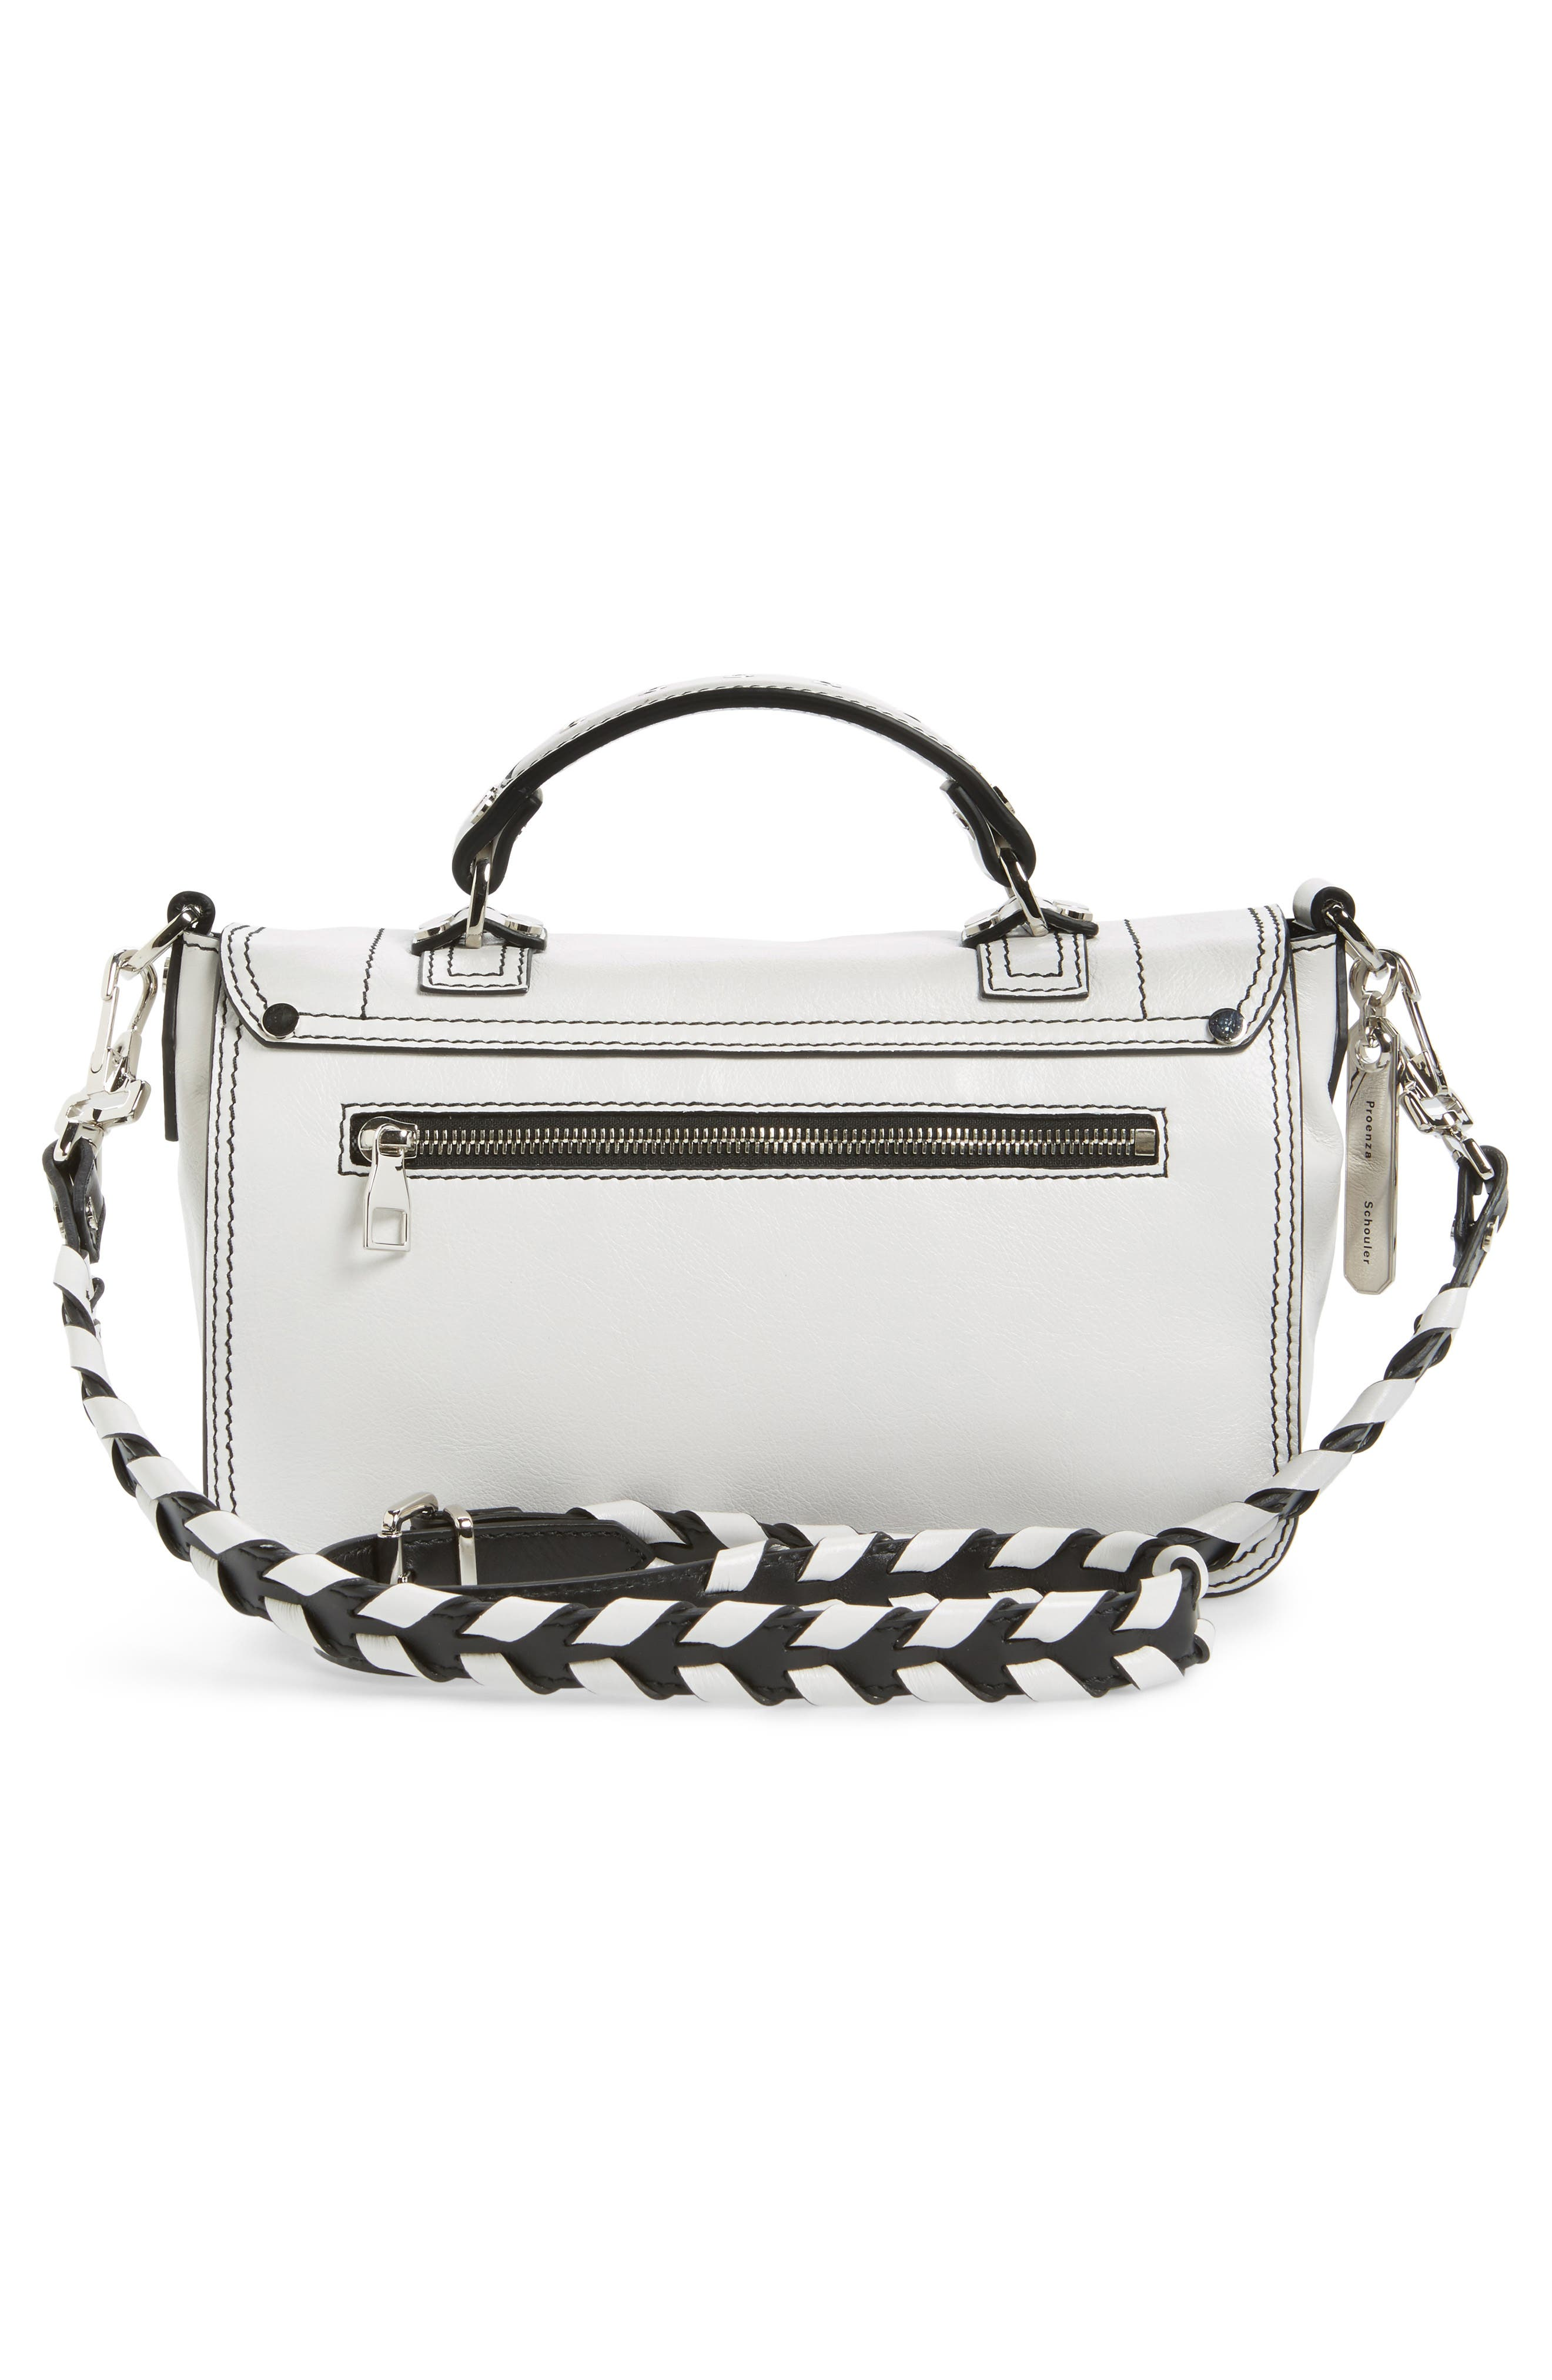 Tiny PS1 Calfskin Leather Satchel with Novelty Shoulder/Crossbody Strap,                             Alternate thumbnail 2, color,                             Optic White